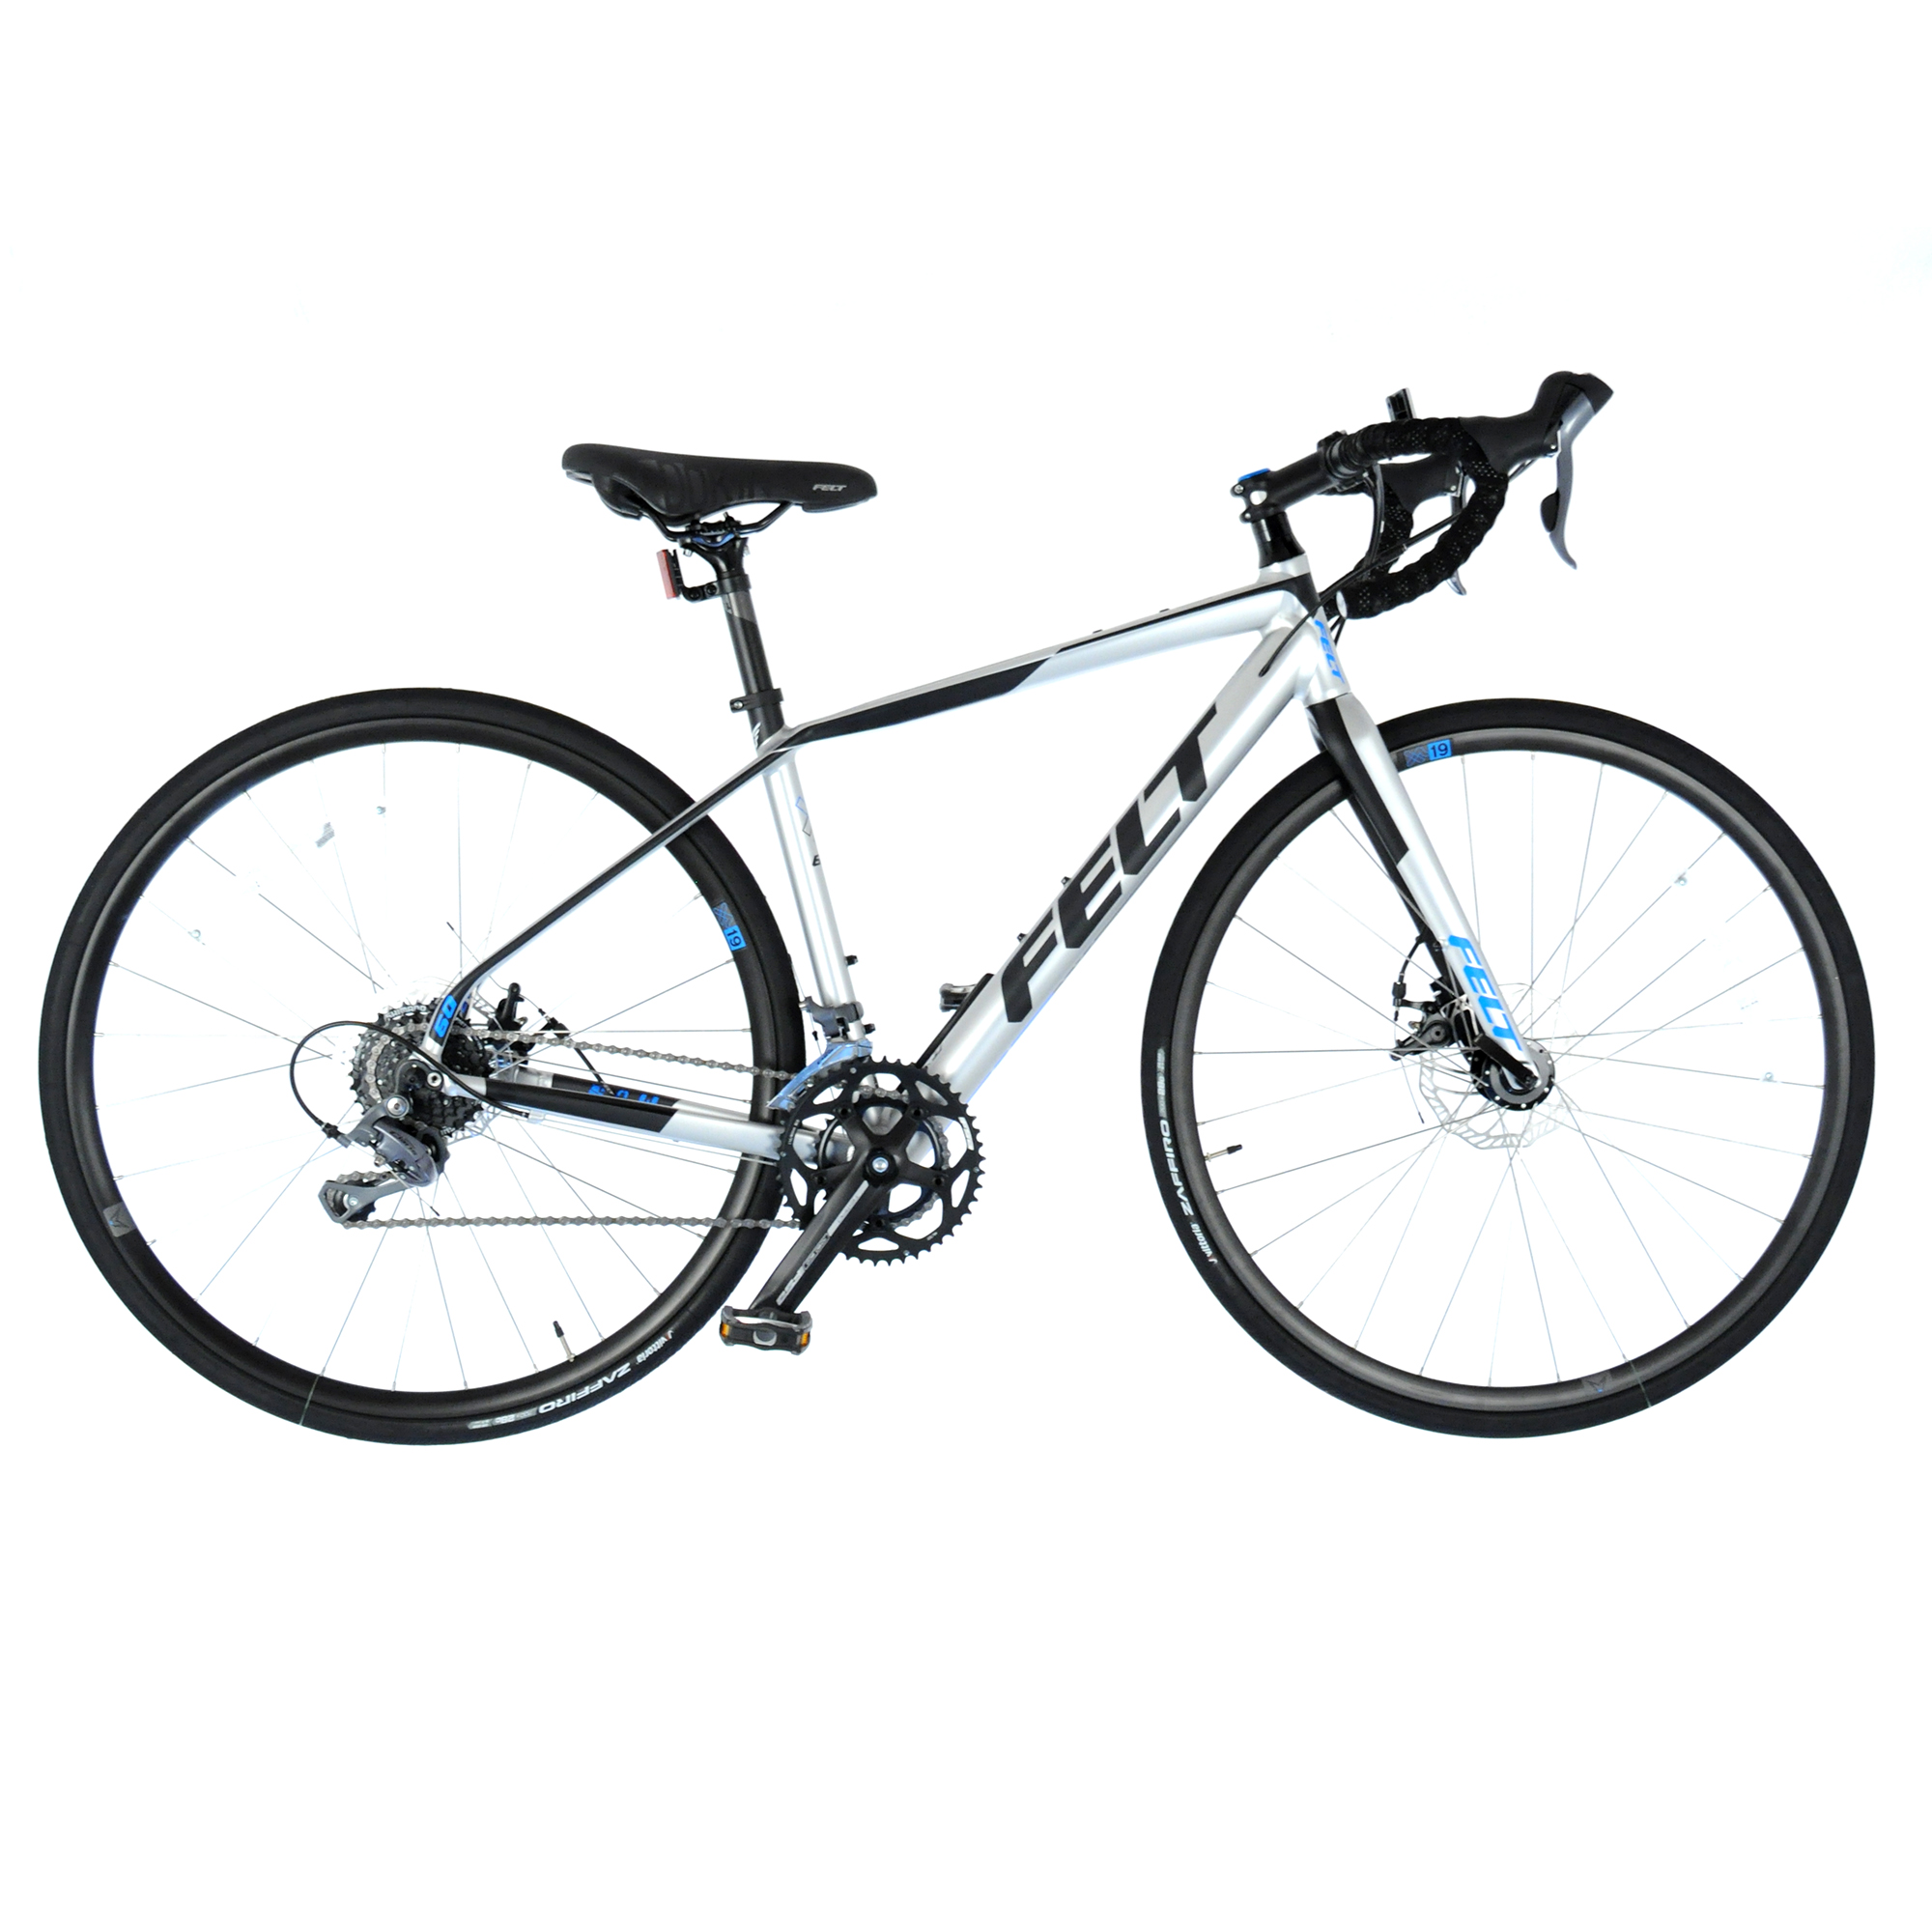 2017 Felt VR60 Disc Road Bike w/ Carbon Fork Shimano Claris 8 Speed // 47cm